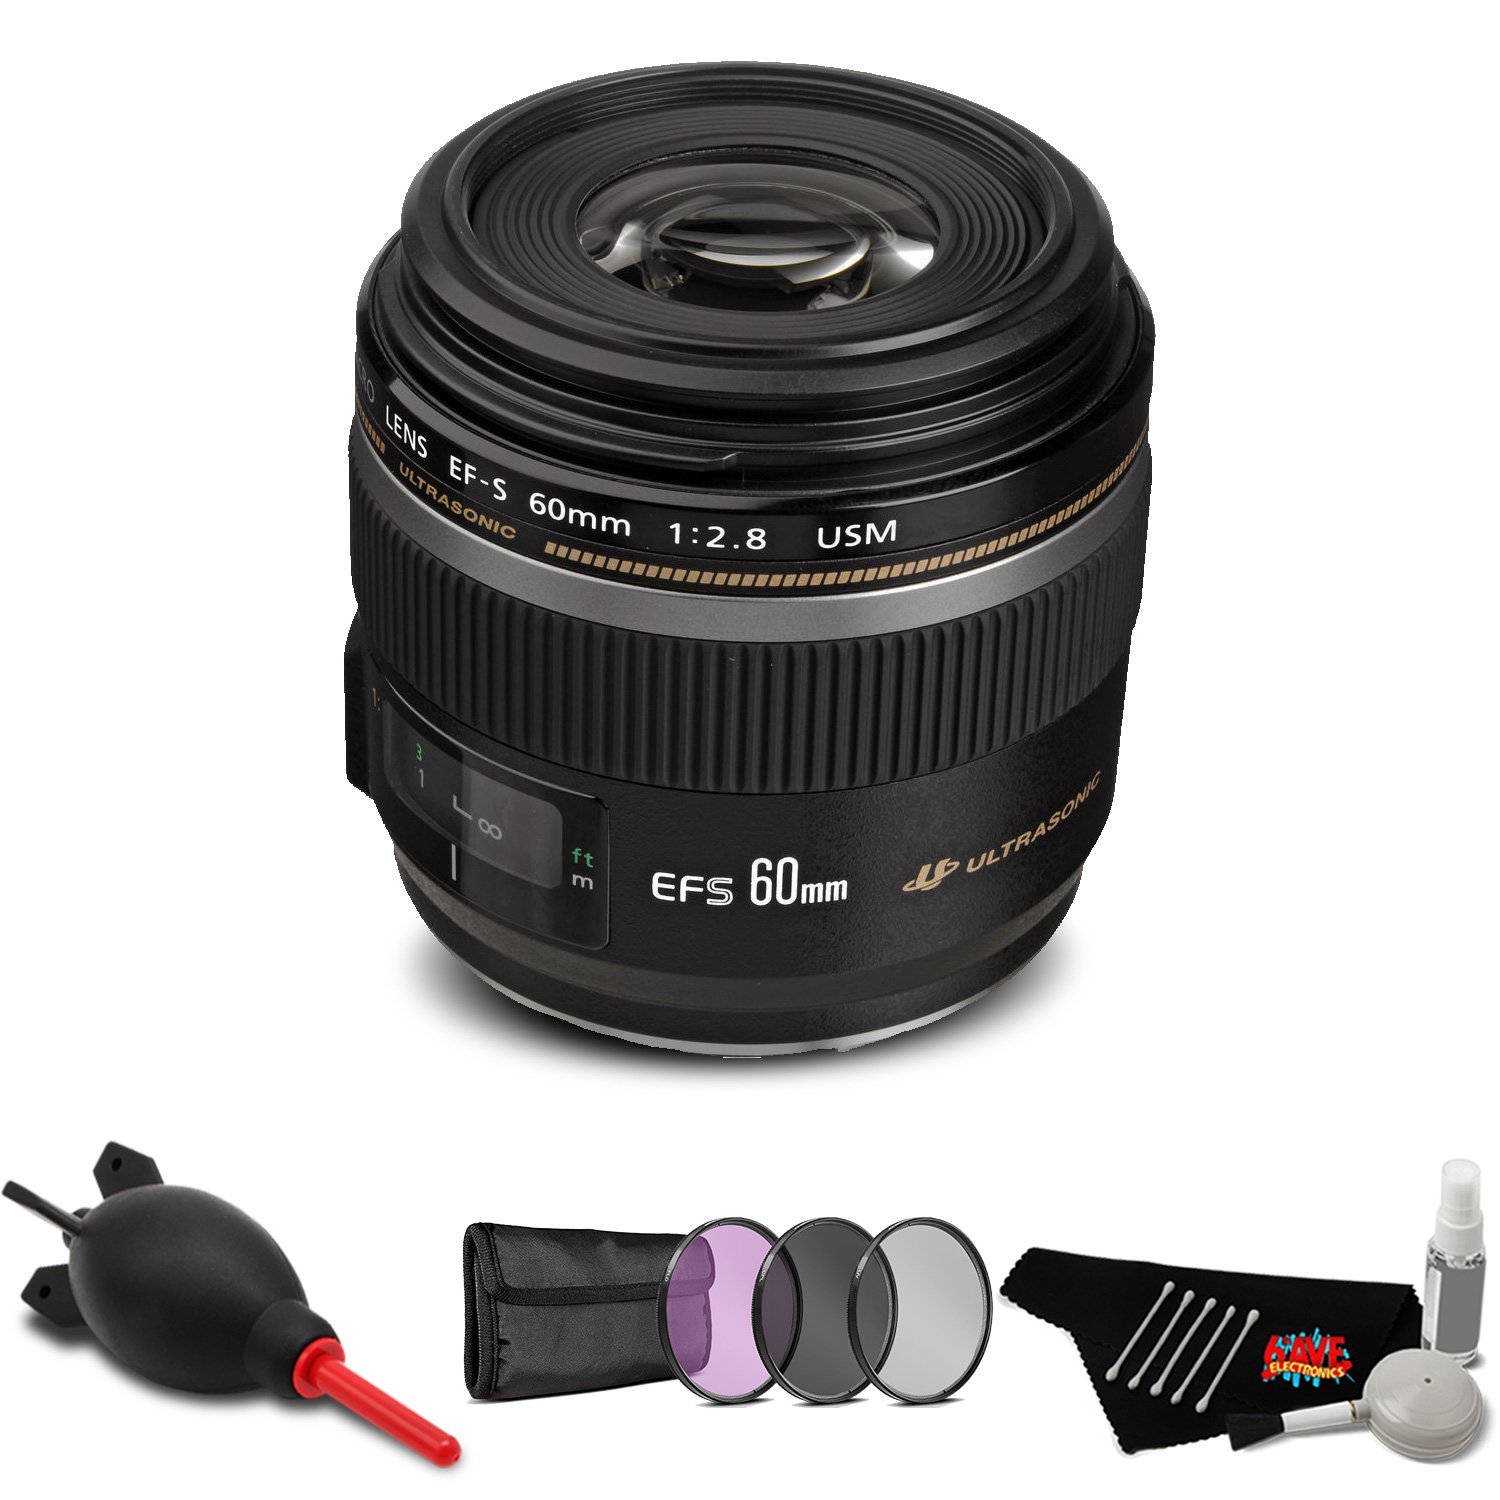 Canon EF 100 mm f/2 mm USMレンズアクセサリーバンドル国際モデル f/2.8 B07FMDBFQ3 Base f/2 Kit|60mm f/2.8 60mm f/2.8 Base Kit, 花遊び:5d8cd183 --- ijpba.info